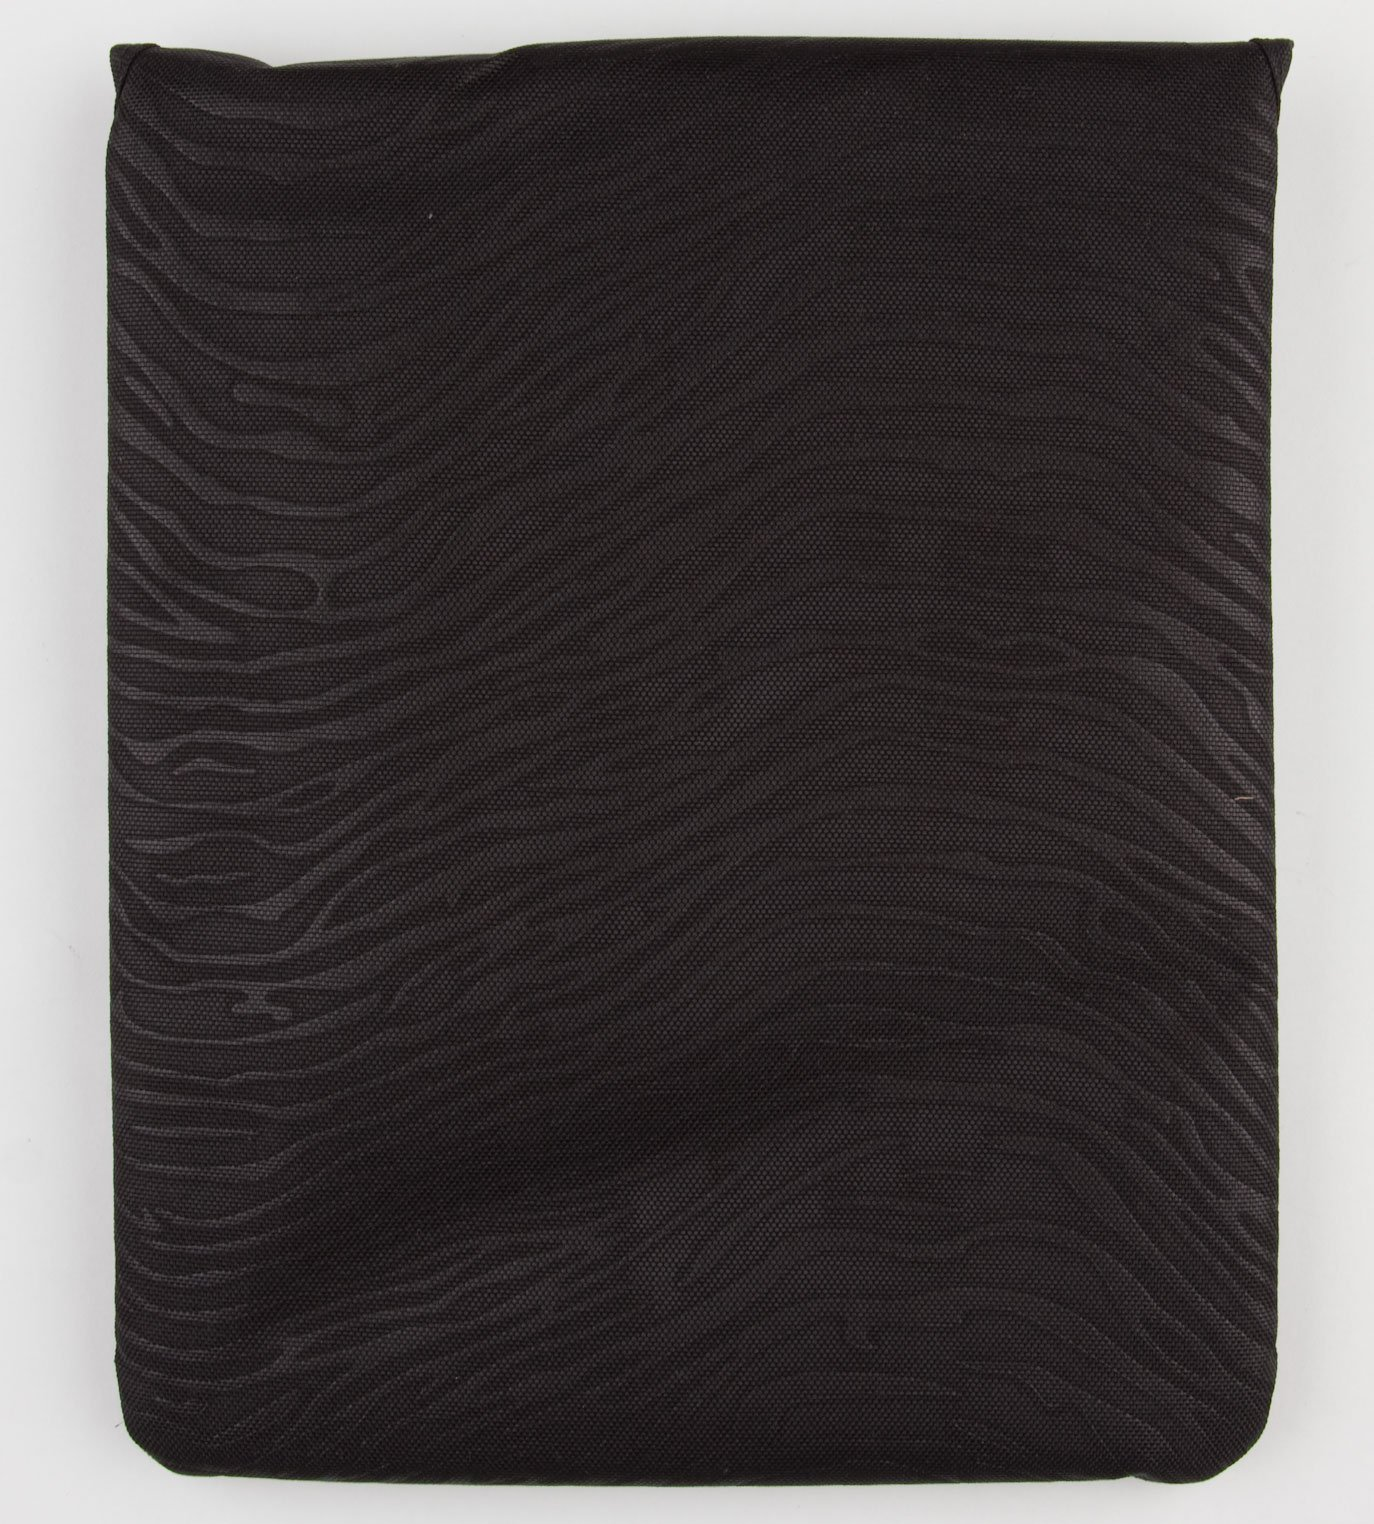 JanSport 2.0 Tablet Sleeve (Black Gloss Zebra) by JanSport (Image #2)